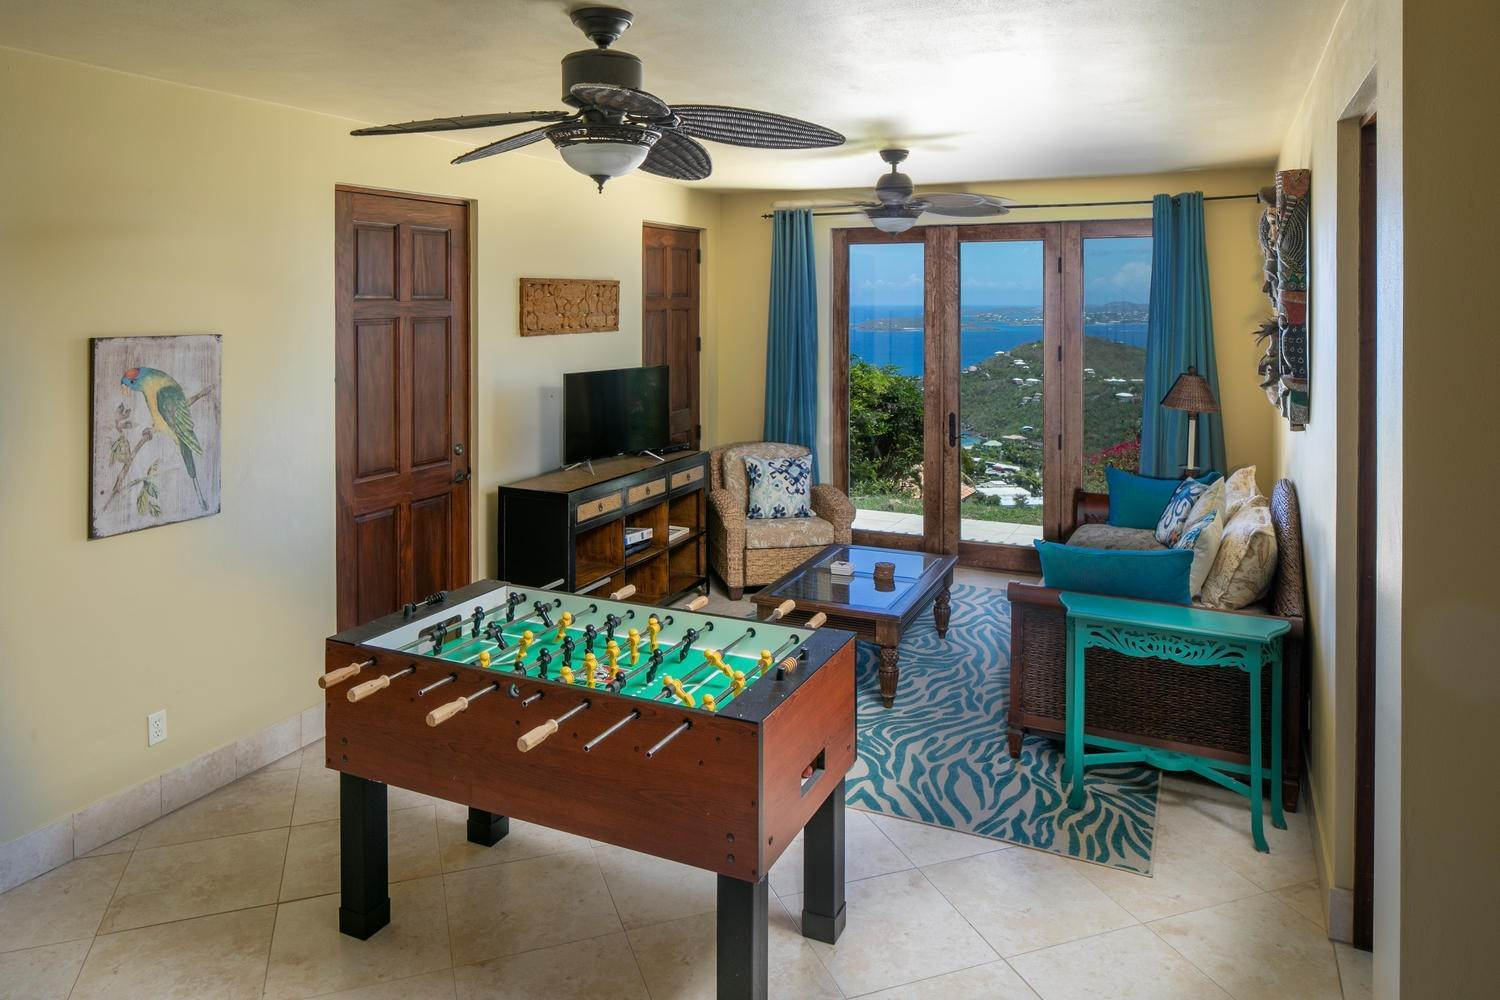 28. Single Family Home for Sale at 3B-53 Sans Soucci & Guinea Gut Cruz Bay St John, Virgin Islands,00830 United States Virgin Islands